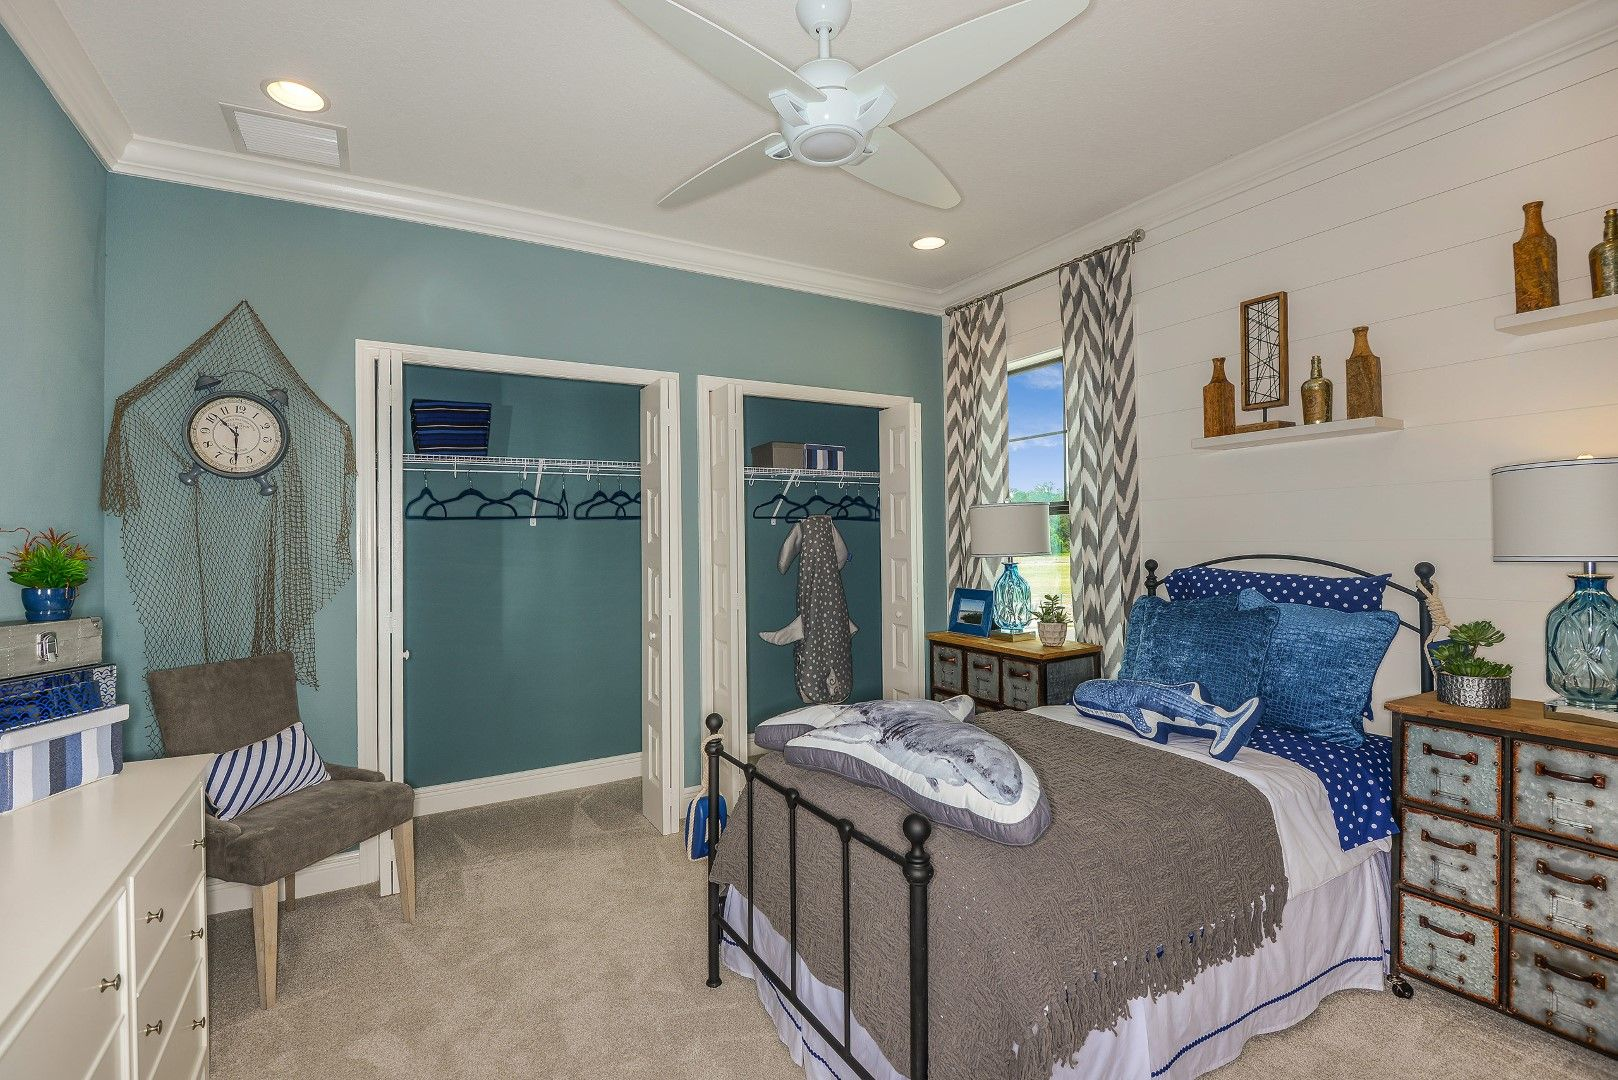 Bedroom featured in the Madeira III By Homes by WestBay in Tampa-St. Petersburg, FL